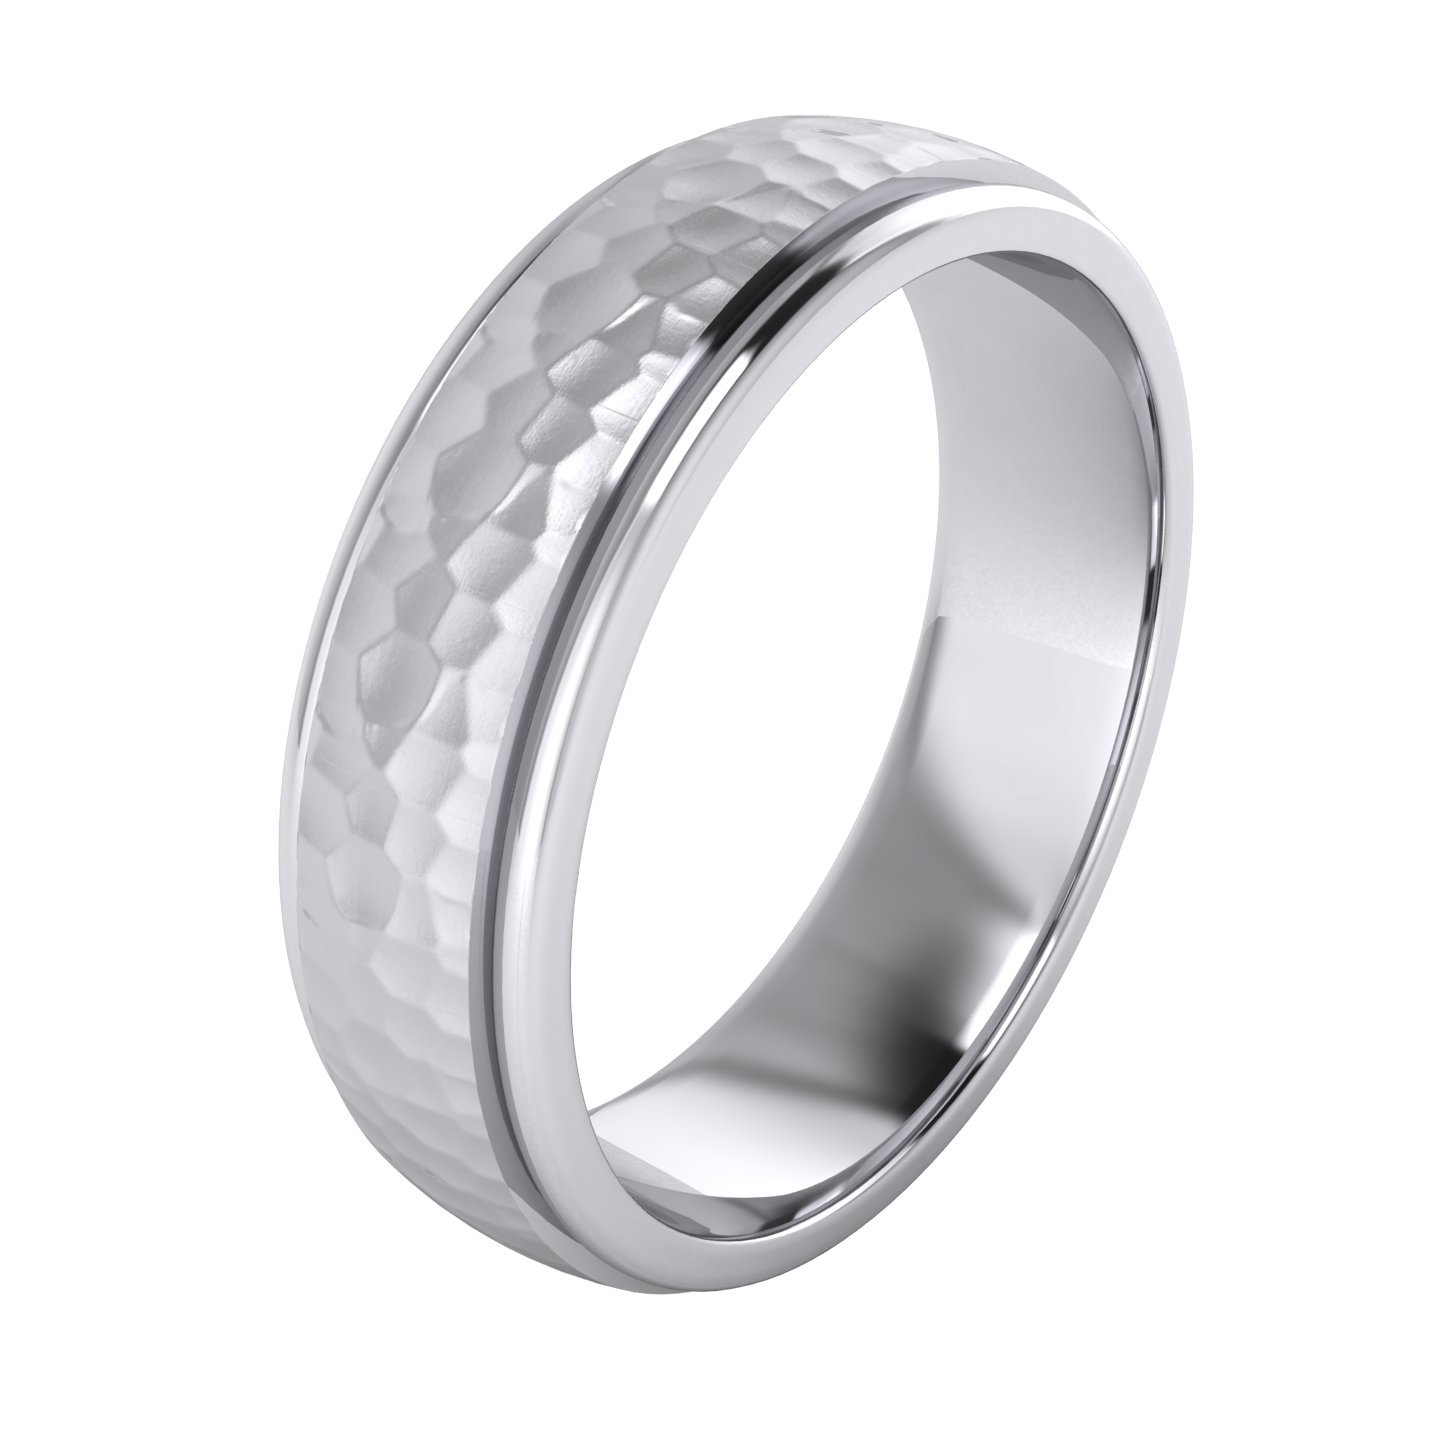 Heavy Solid Sterling Silver 6mm Hammered Unisex Wedding Band Comfort Fit Ring Raised Center Polished Sides (9.5)